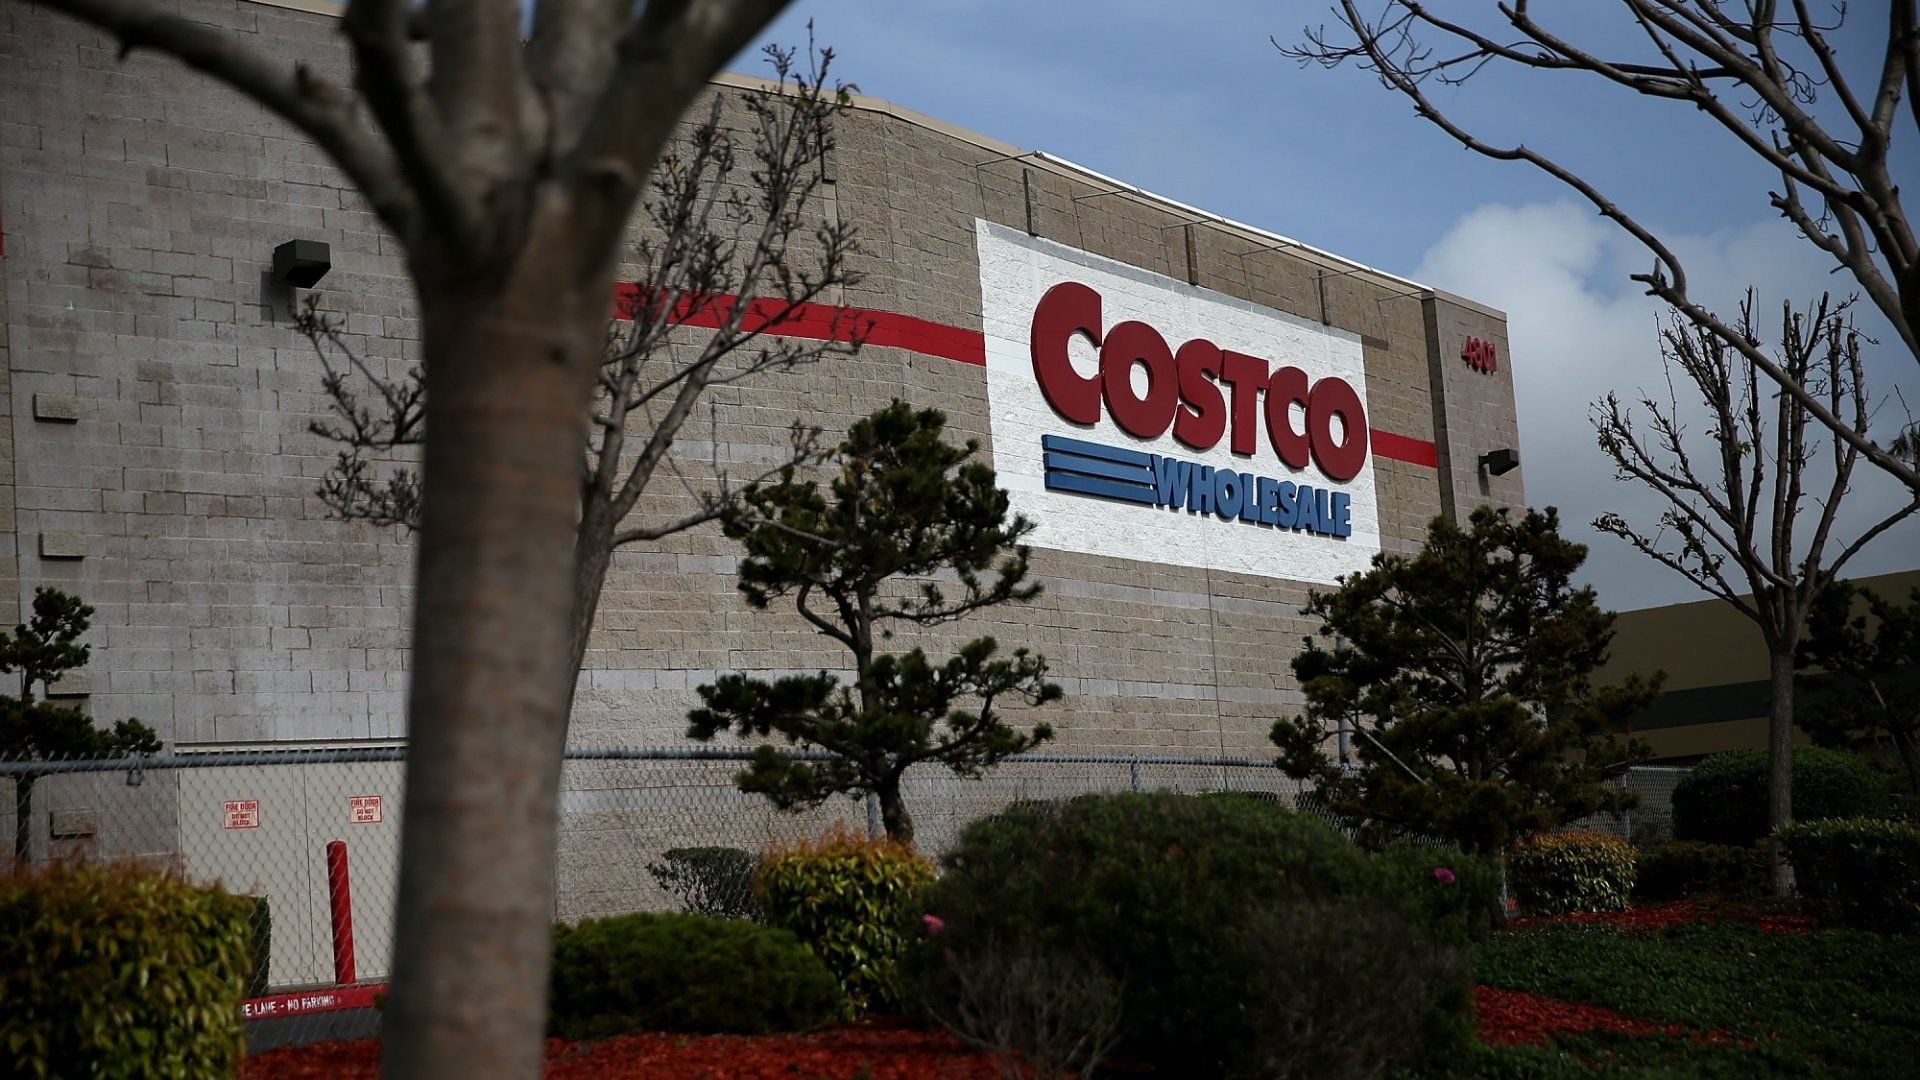 If You Buy Supplies at Costco, It Might Be Time to Change Credit Cards